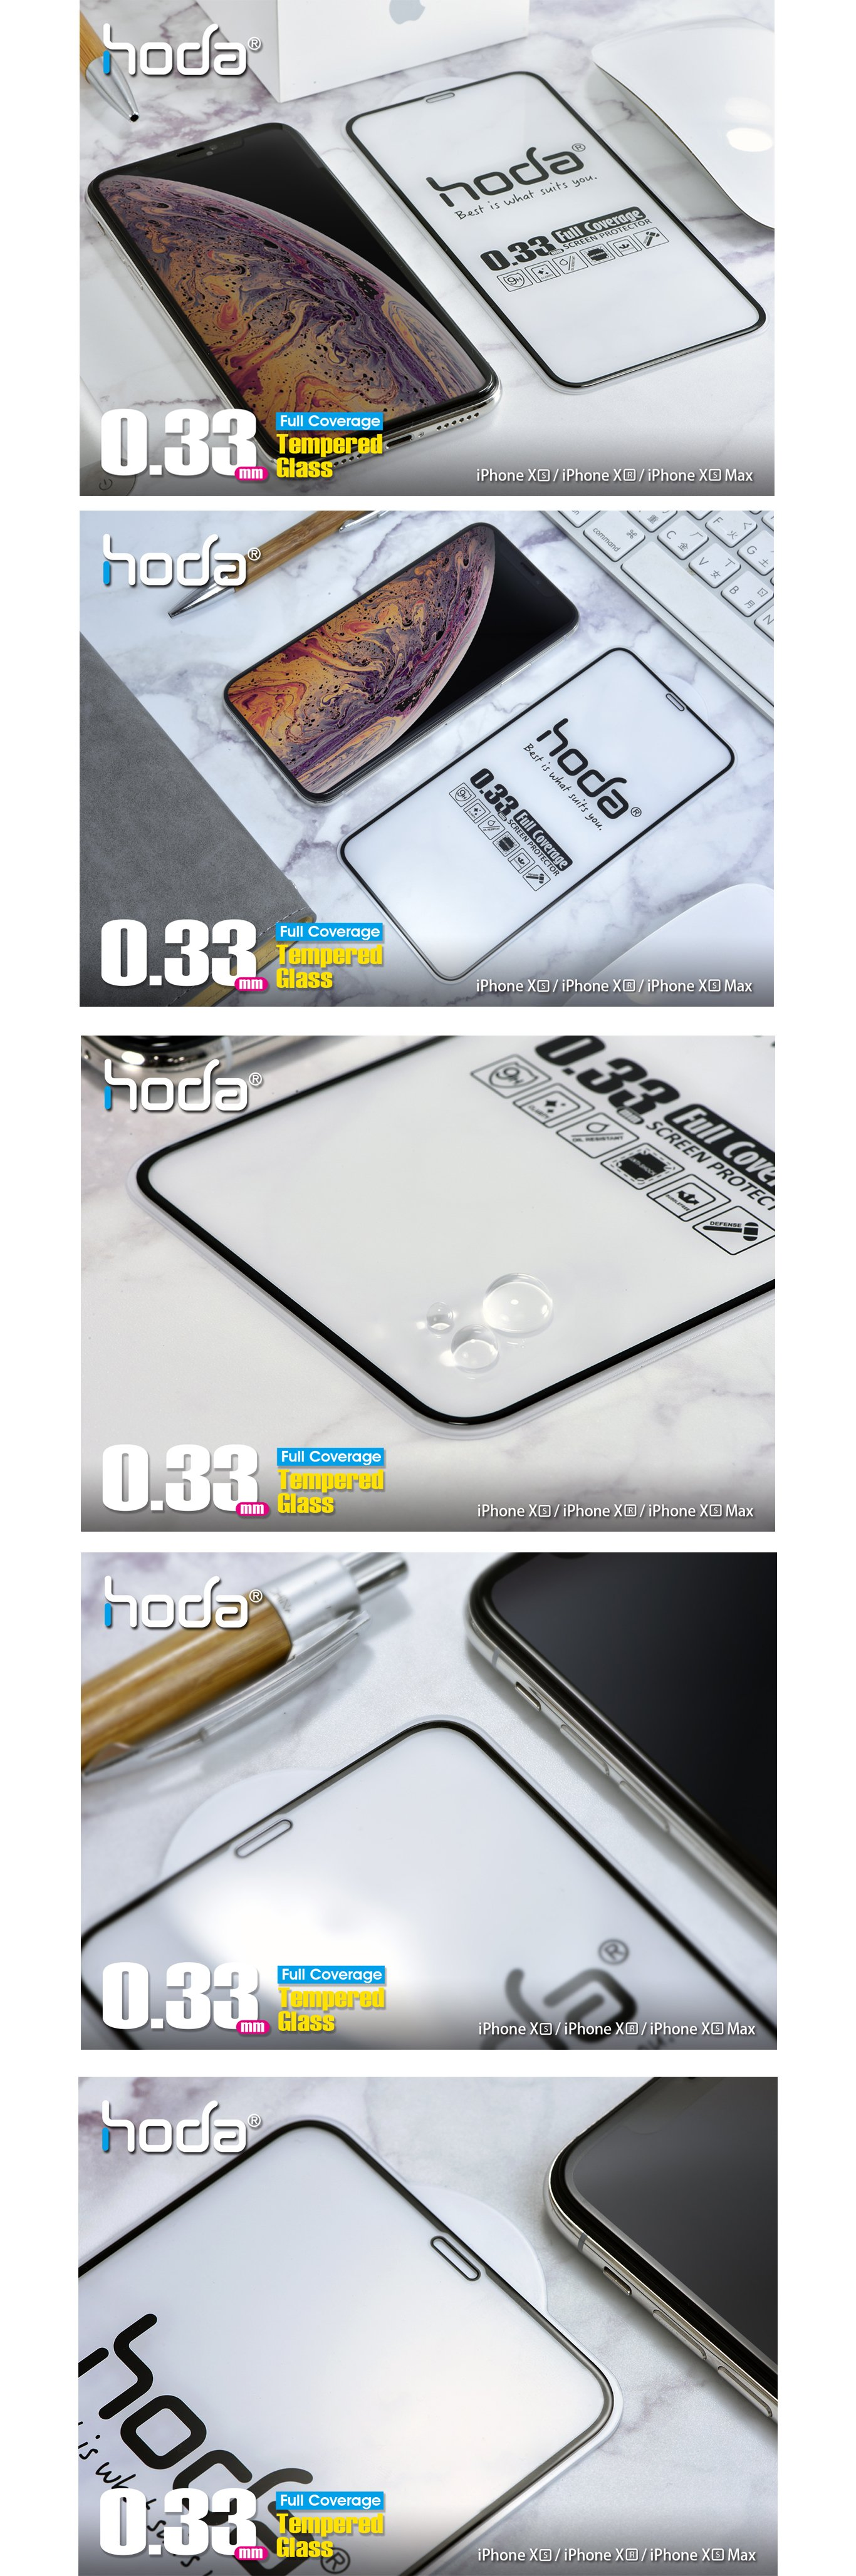 hoda-full-coverage-2.5D-0.33mm-iphone-xs-max-clear-malaysia-authorised-retailer-overview